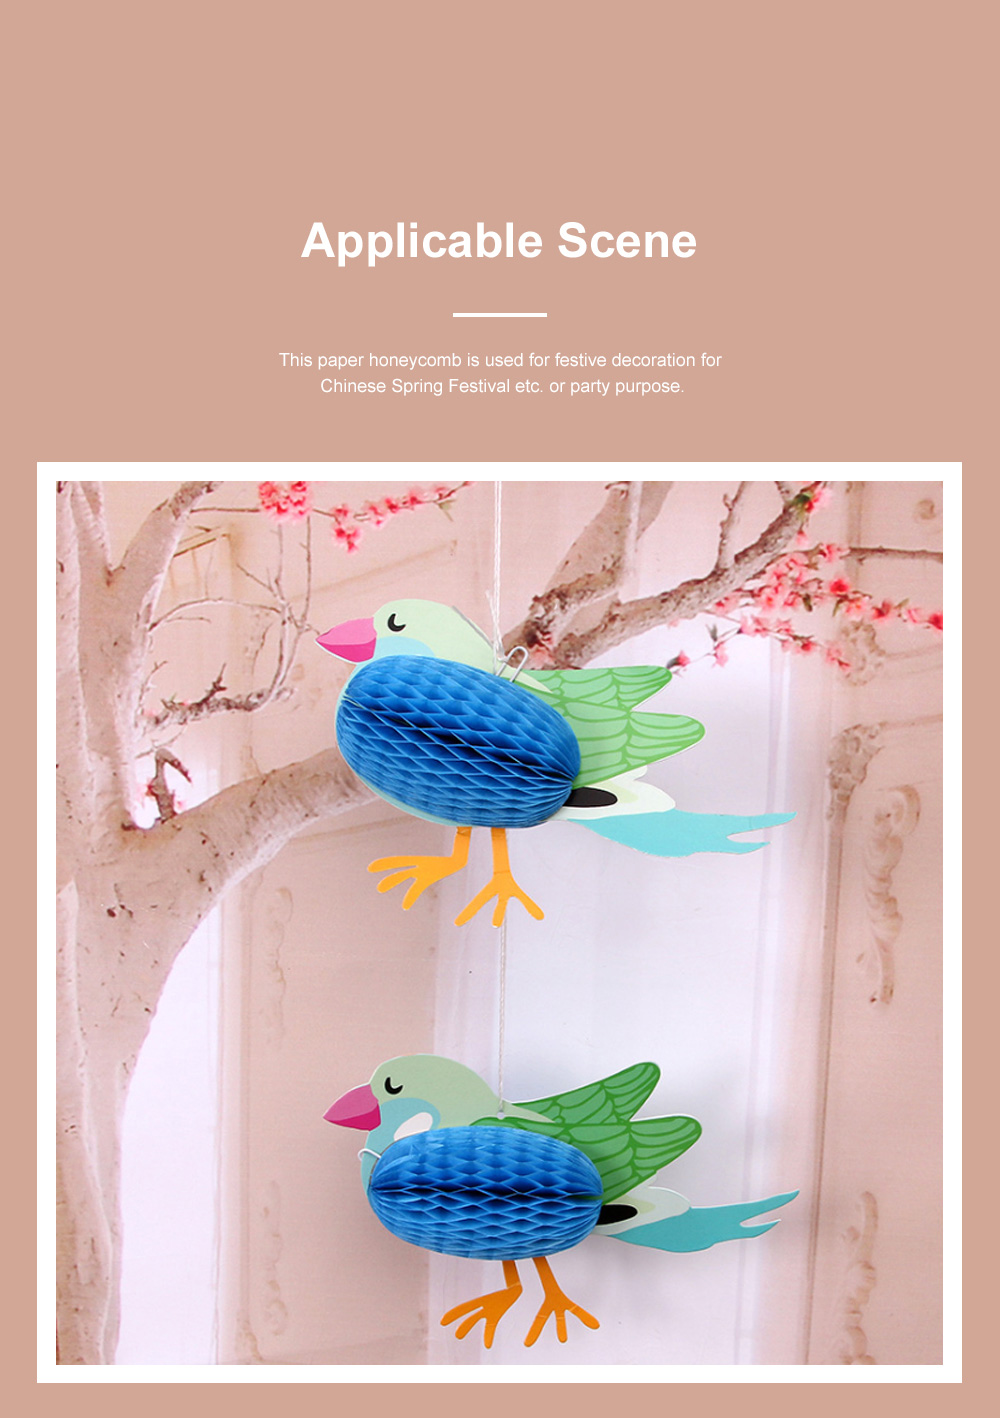 6pcs Festive Decoration Bird Fish Paper Honeycomb Party Use Three-dimensional Card Fish Paper Honeycomb Paper Flowers Ball 4